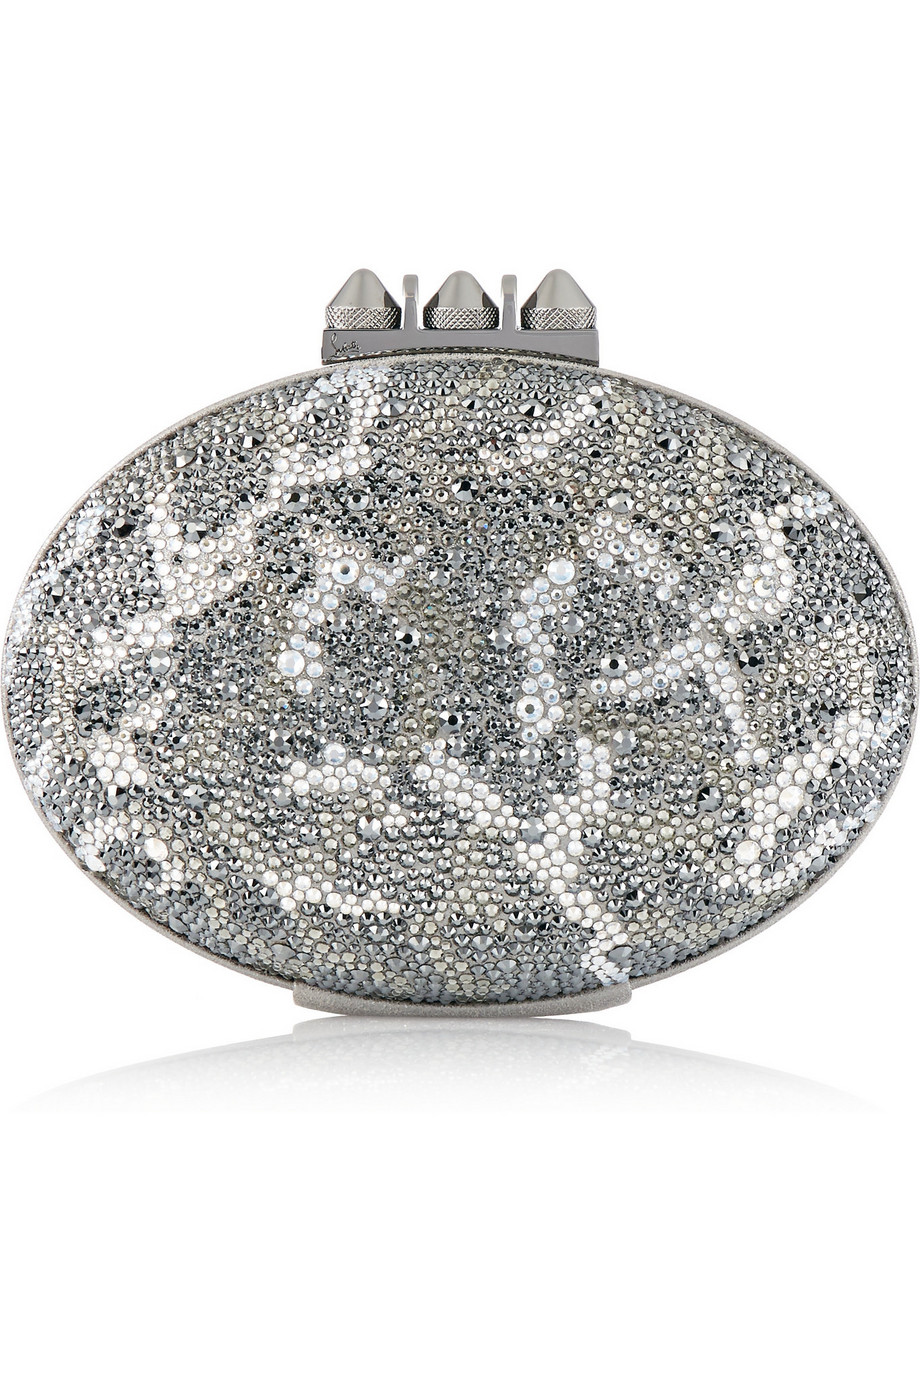 Christian Louboutin Mina Crystal-Embellished Suede Clutch, Leopard Print/Silver, Women's, Size: One size